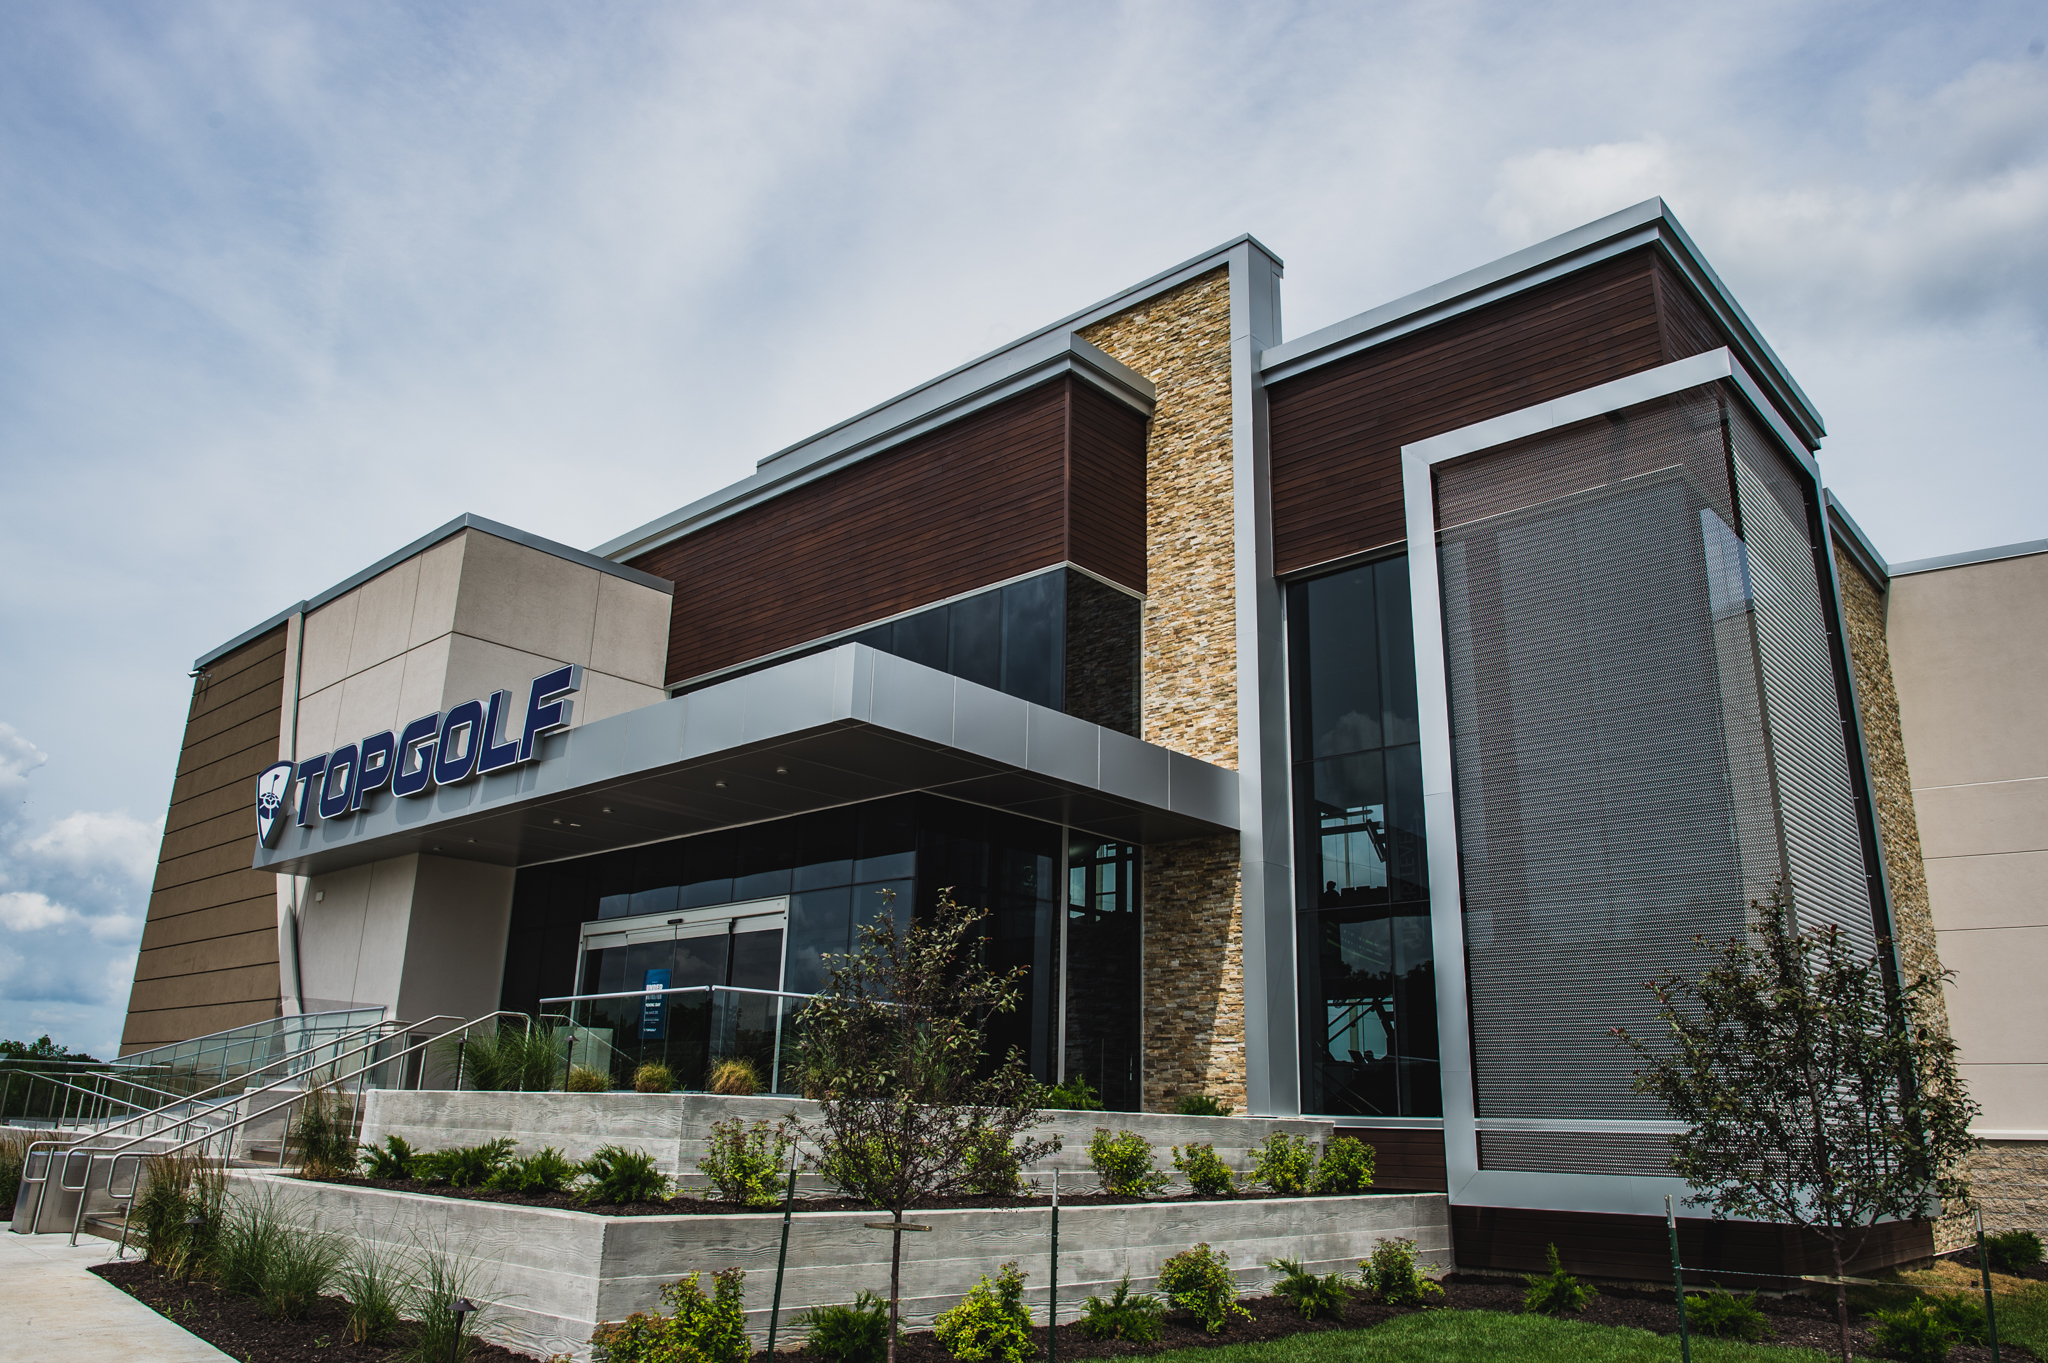 topgolf_kc-1.jpg